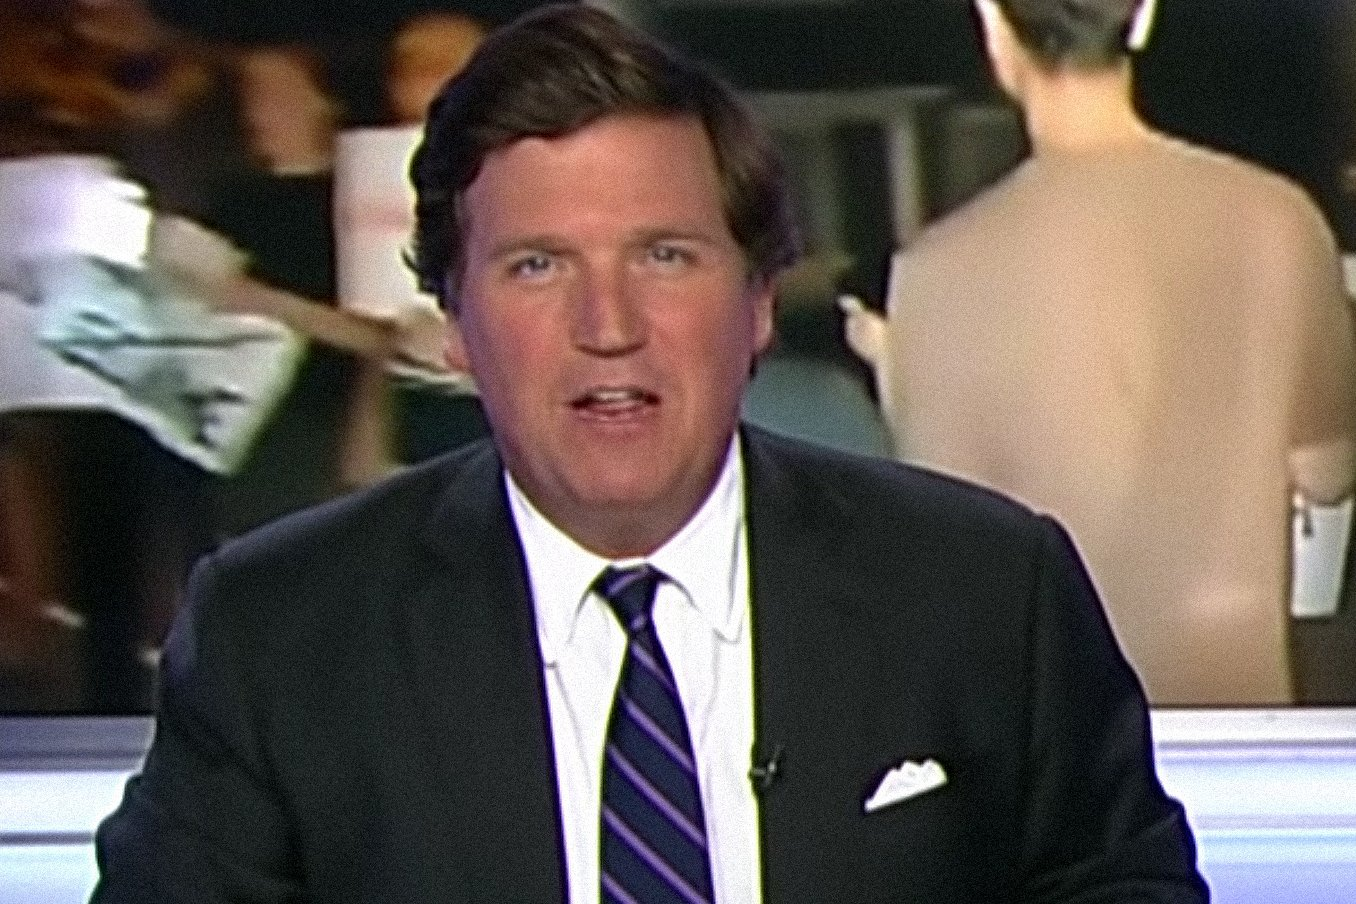 Tucker Carlson White Nationalist Fox News Channel